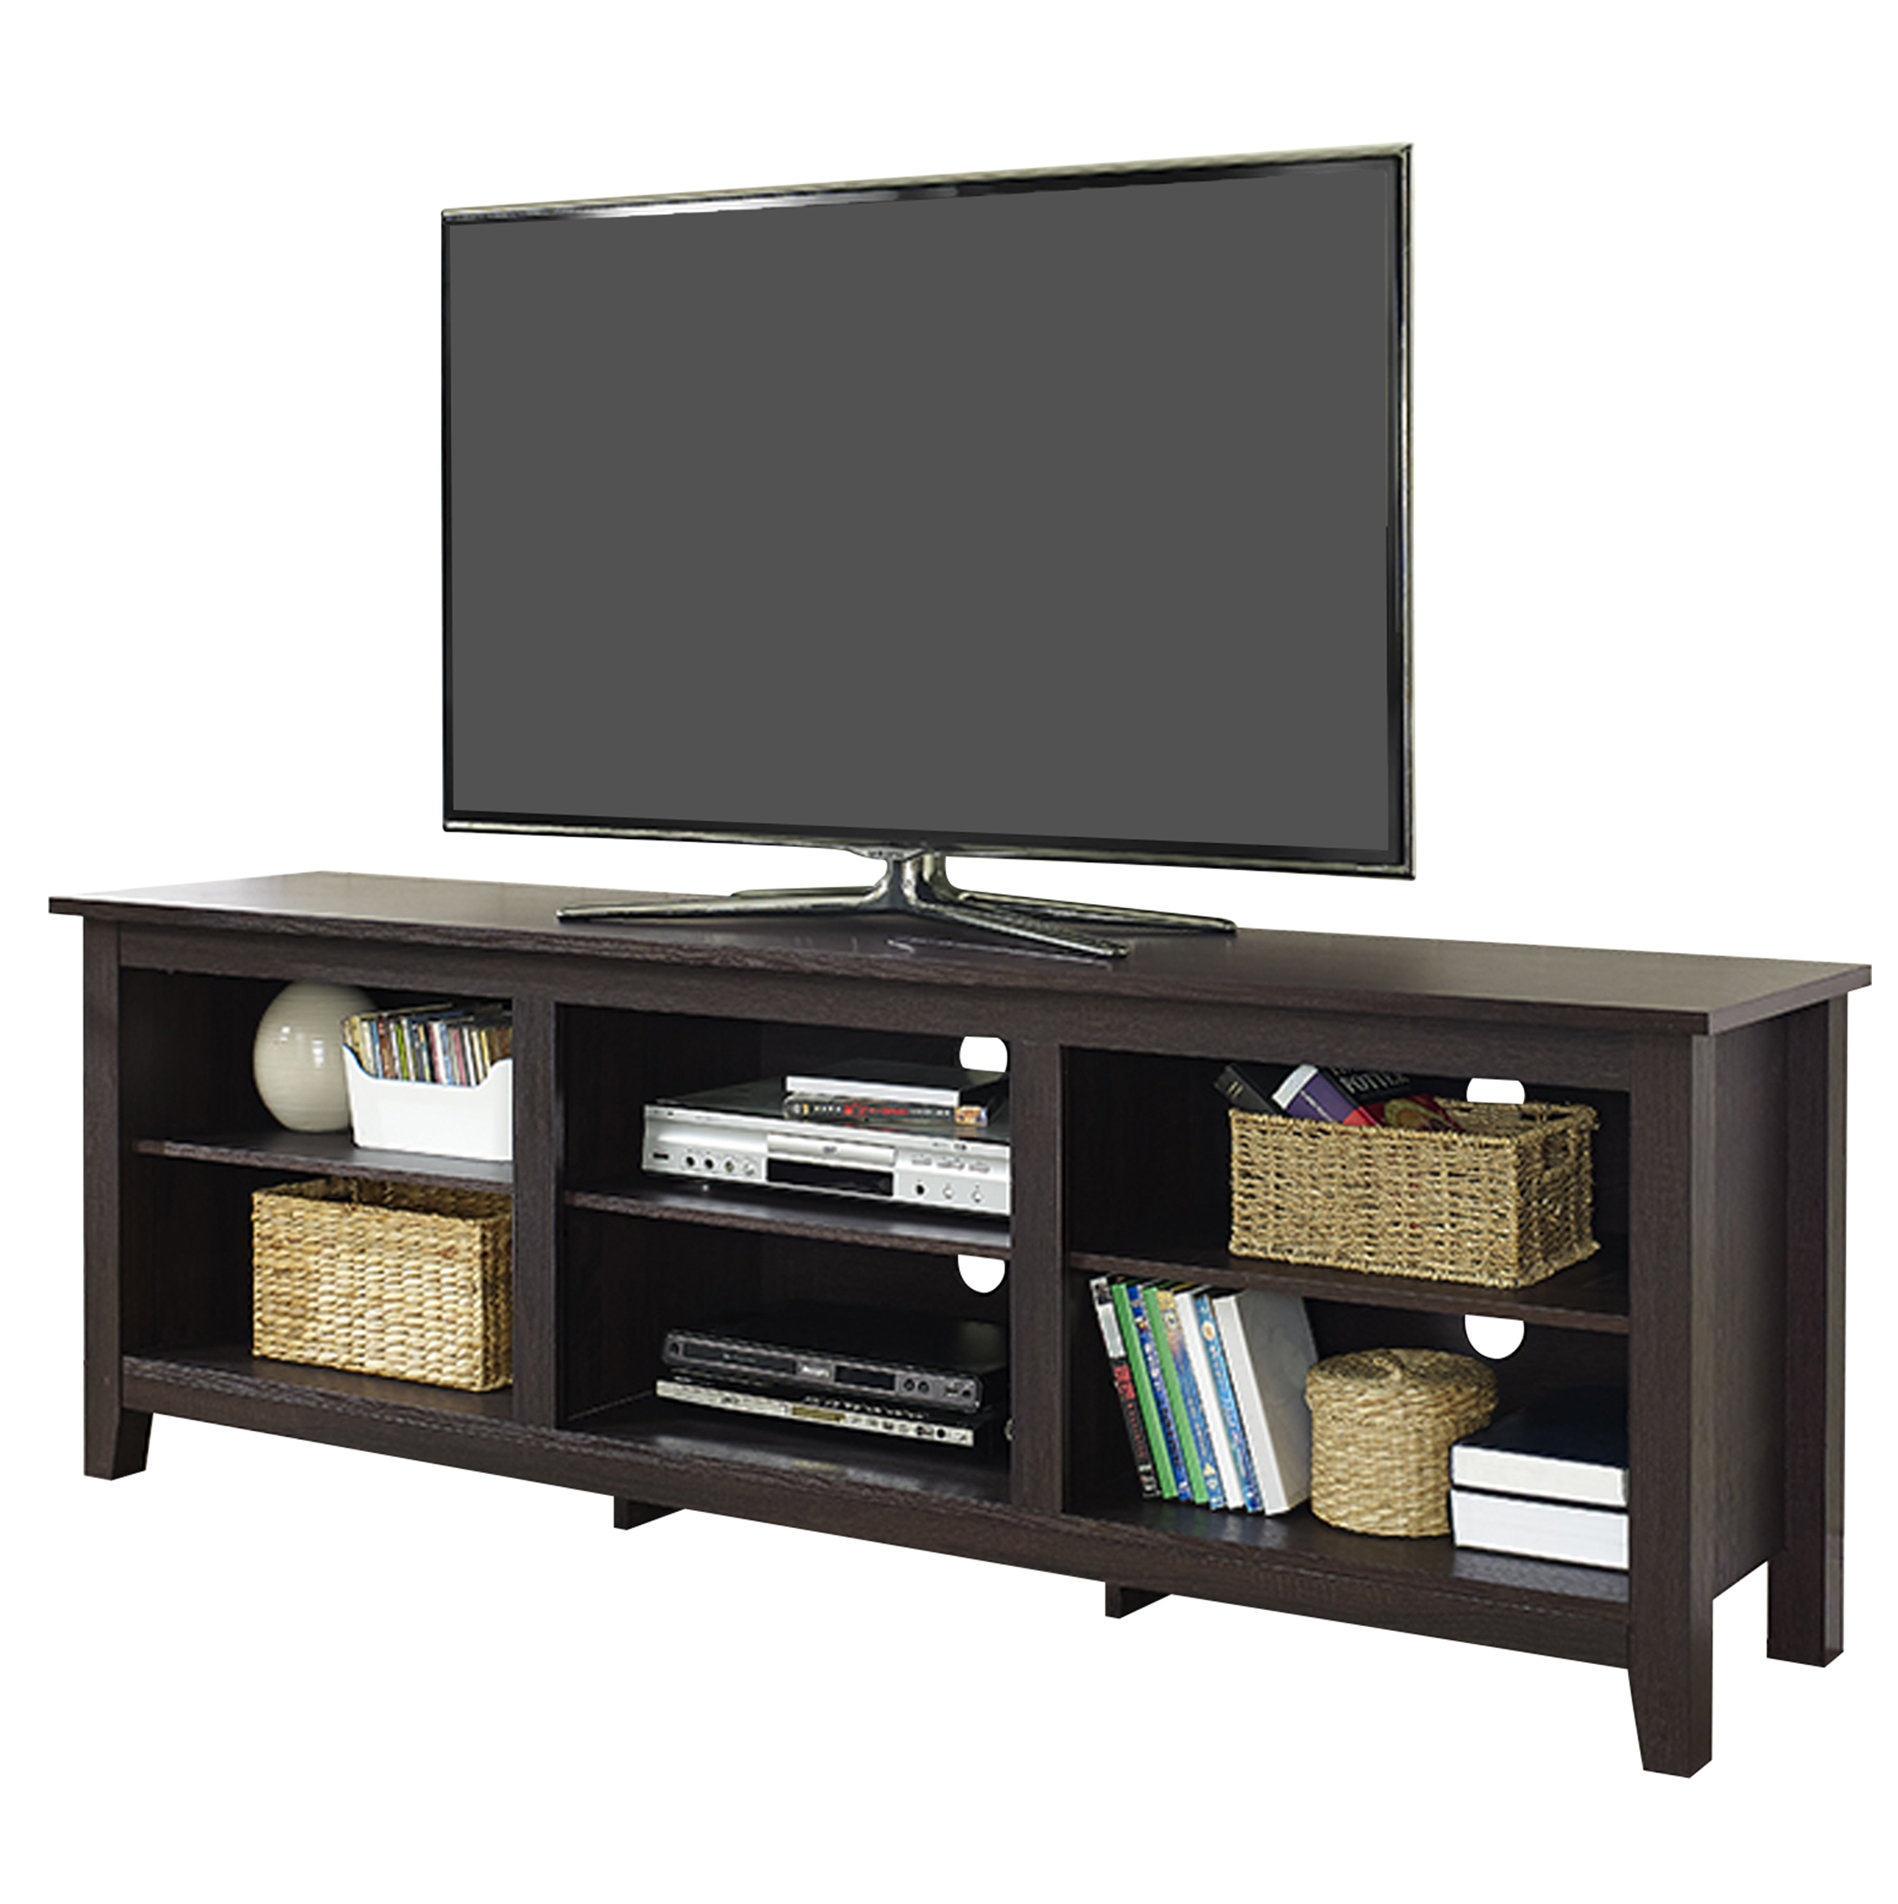 Tv Stands | Joss & Main pertaining to Annabelle Black 70 Inch Tv Stands (Image 28 of 30)